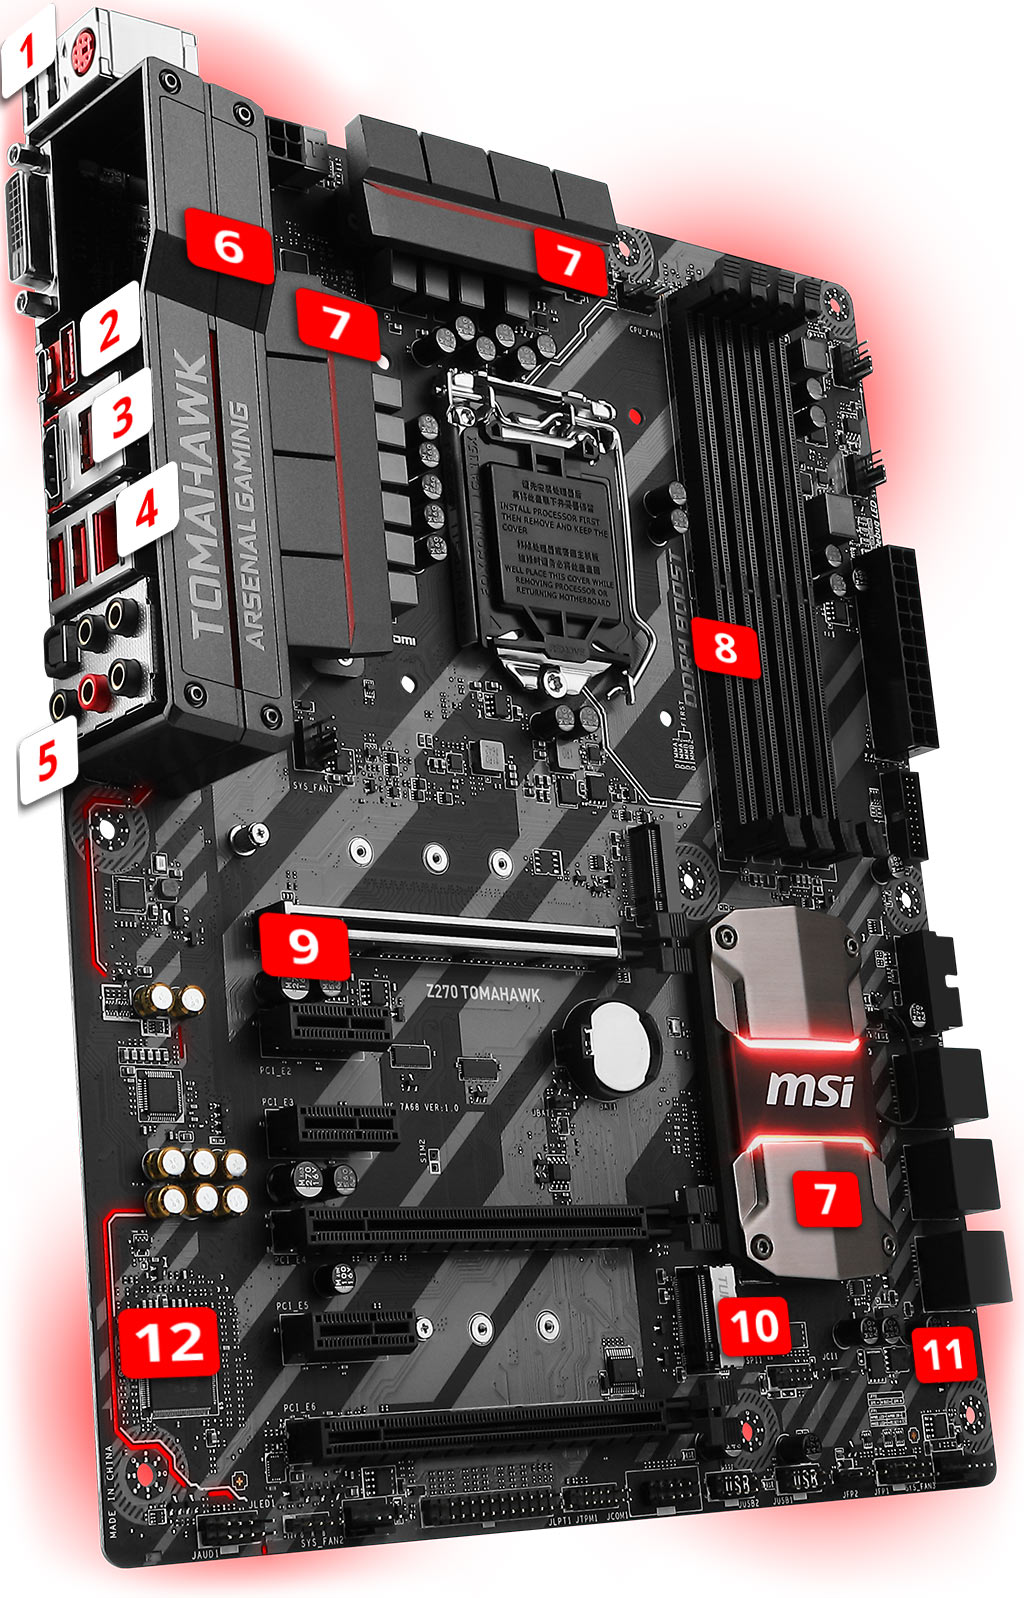 MSI Z270 TOMAHAWK overview